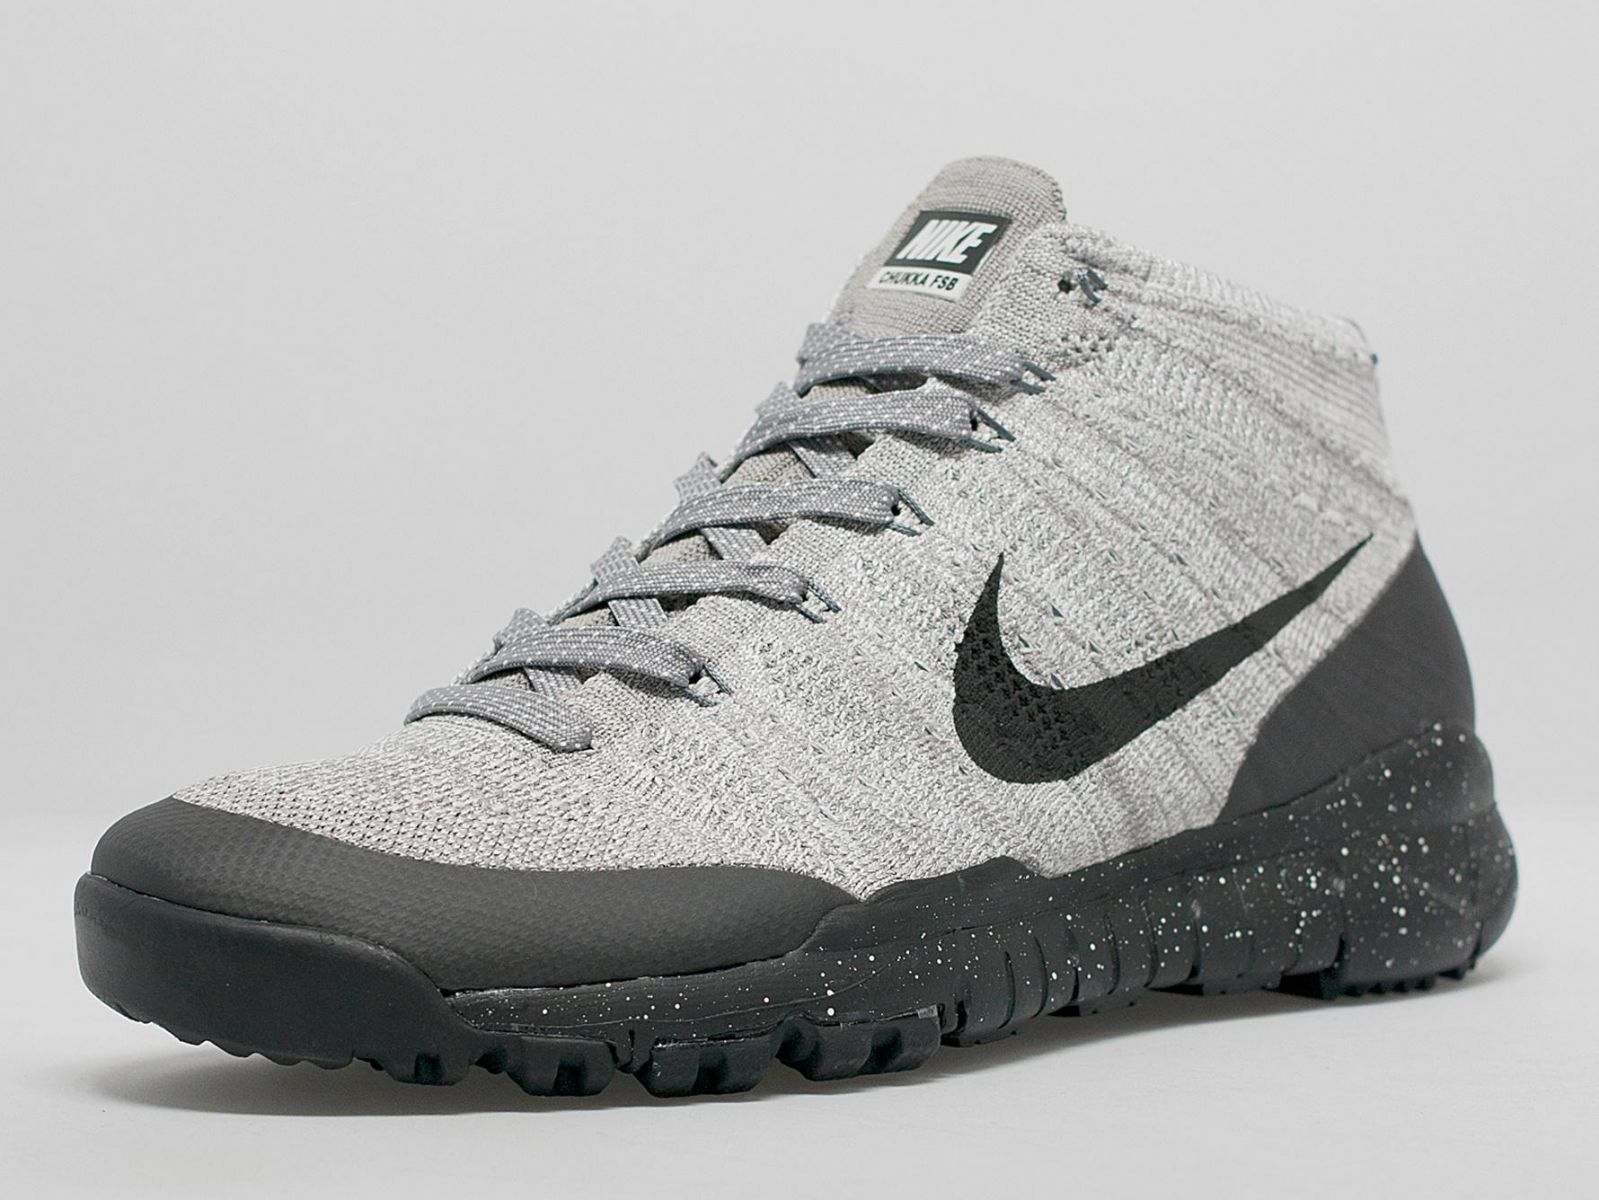 89bce80583c9 Nike Flyknit in rugged mode on the Trainer Chukka FSB.